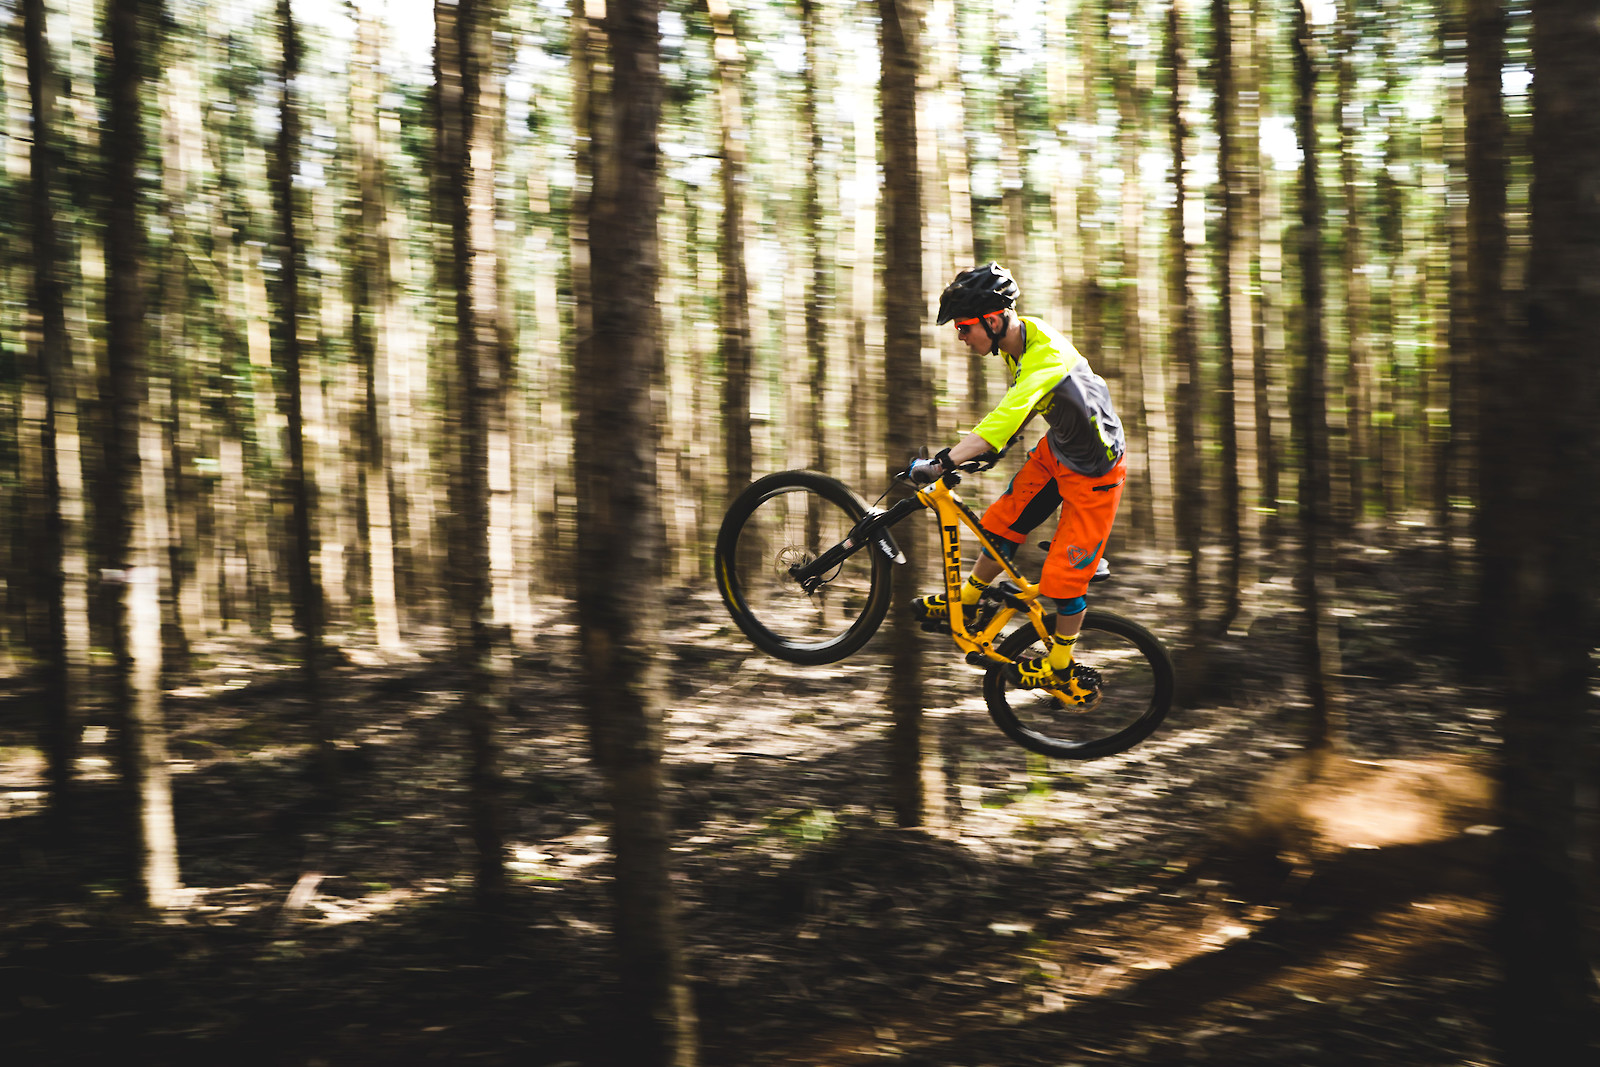 Pyga Panning - Its.Peteee - Mountain Biking Pictures - Vital MTB